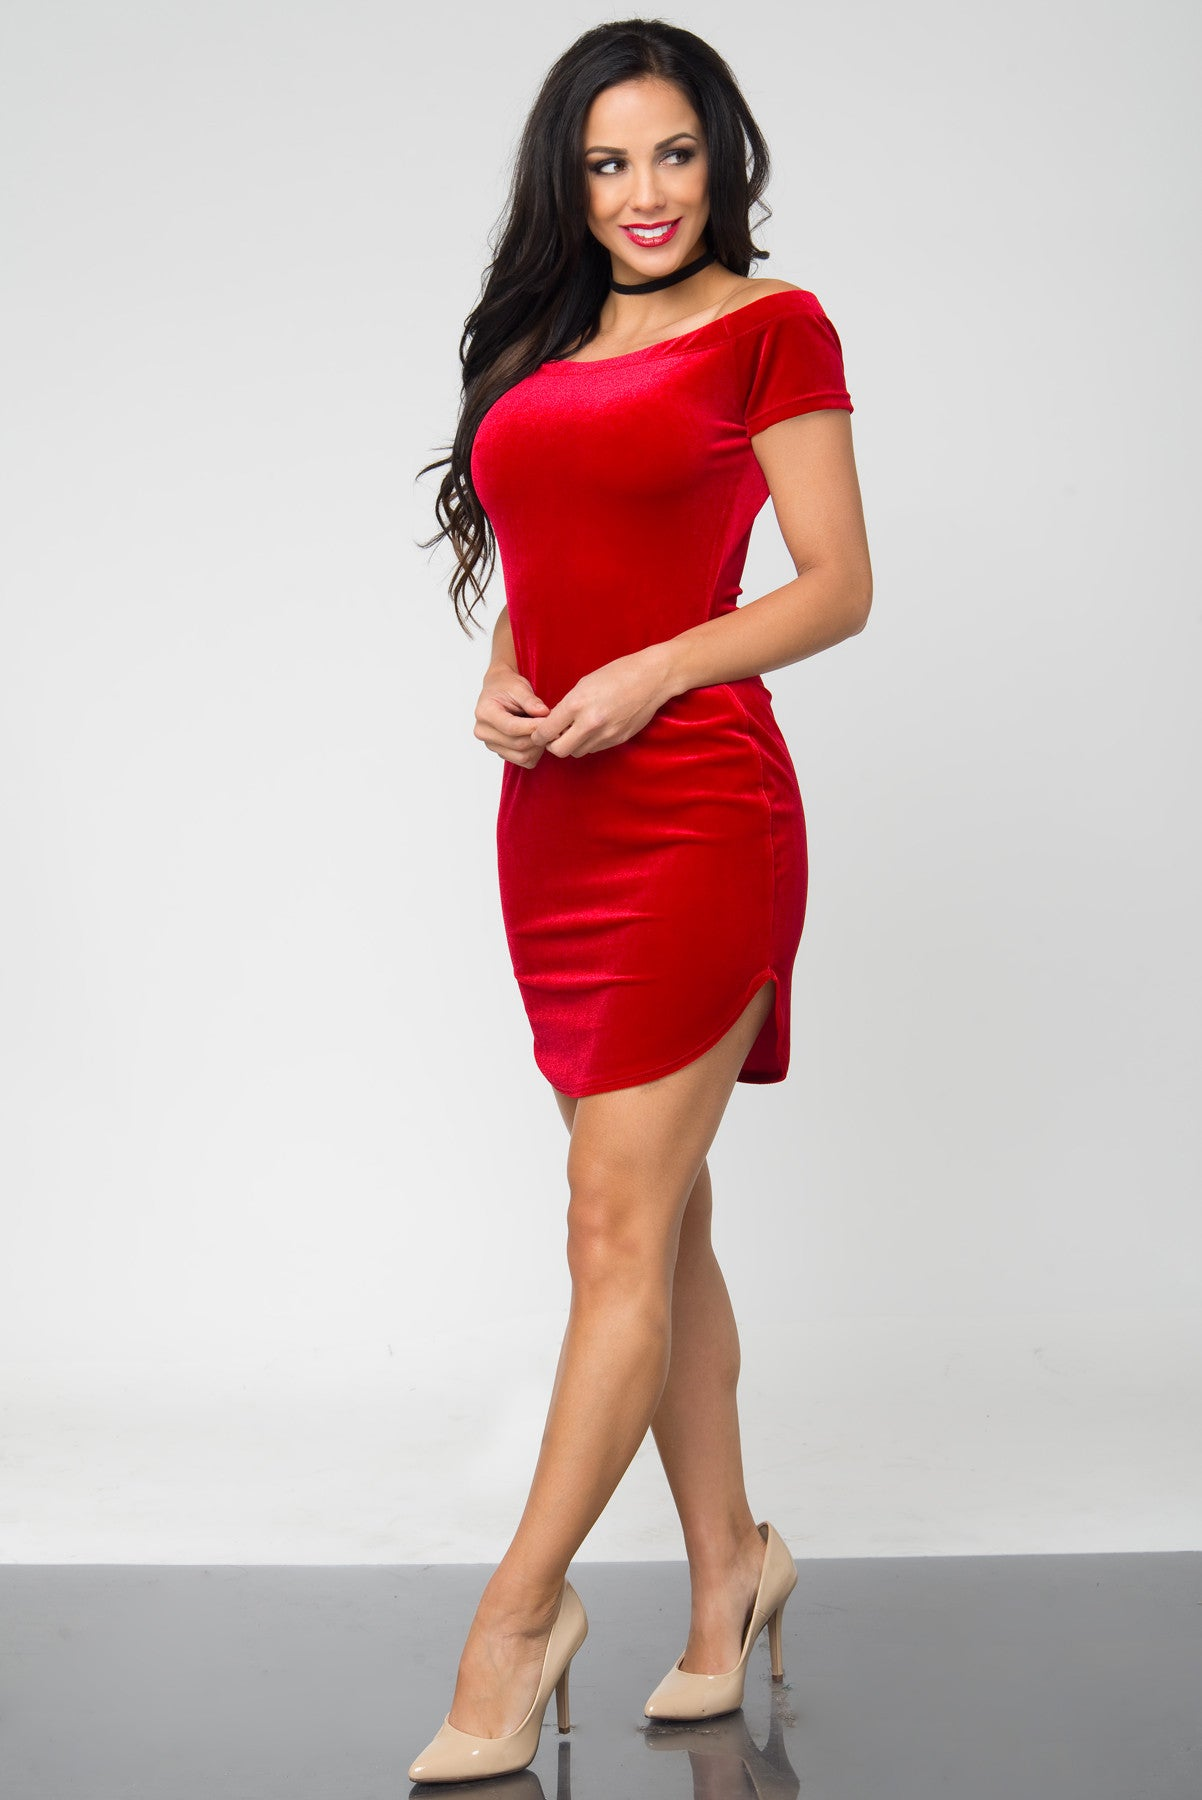 Noellia Red Velvet Dress - Fashion Effect Store  - 3